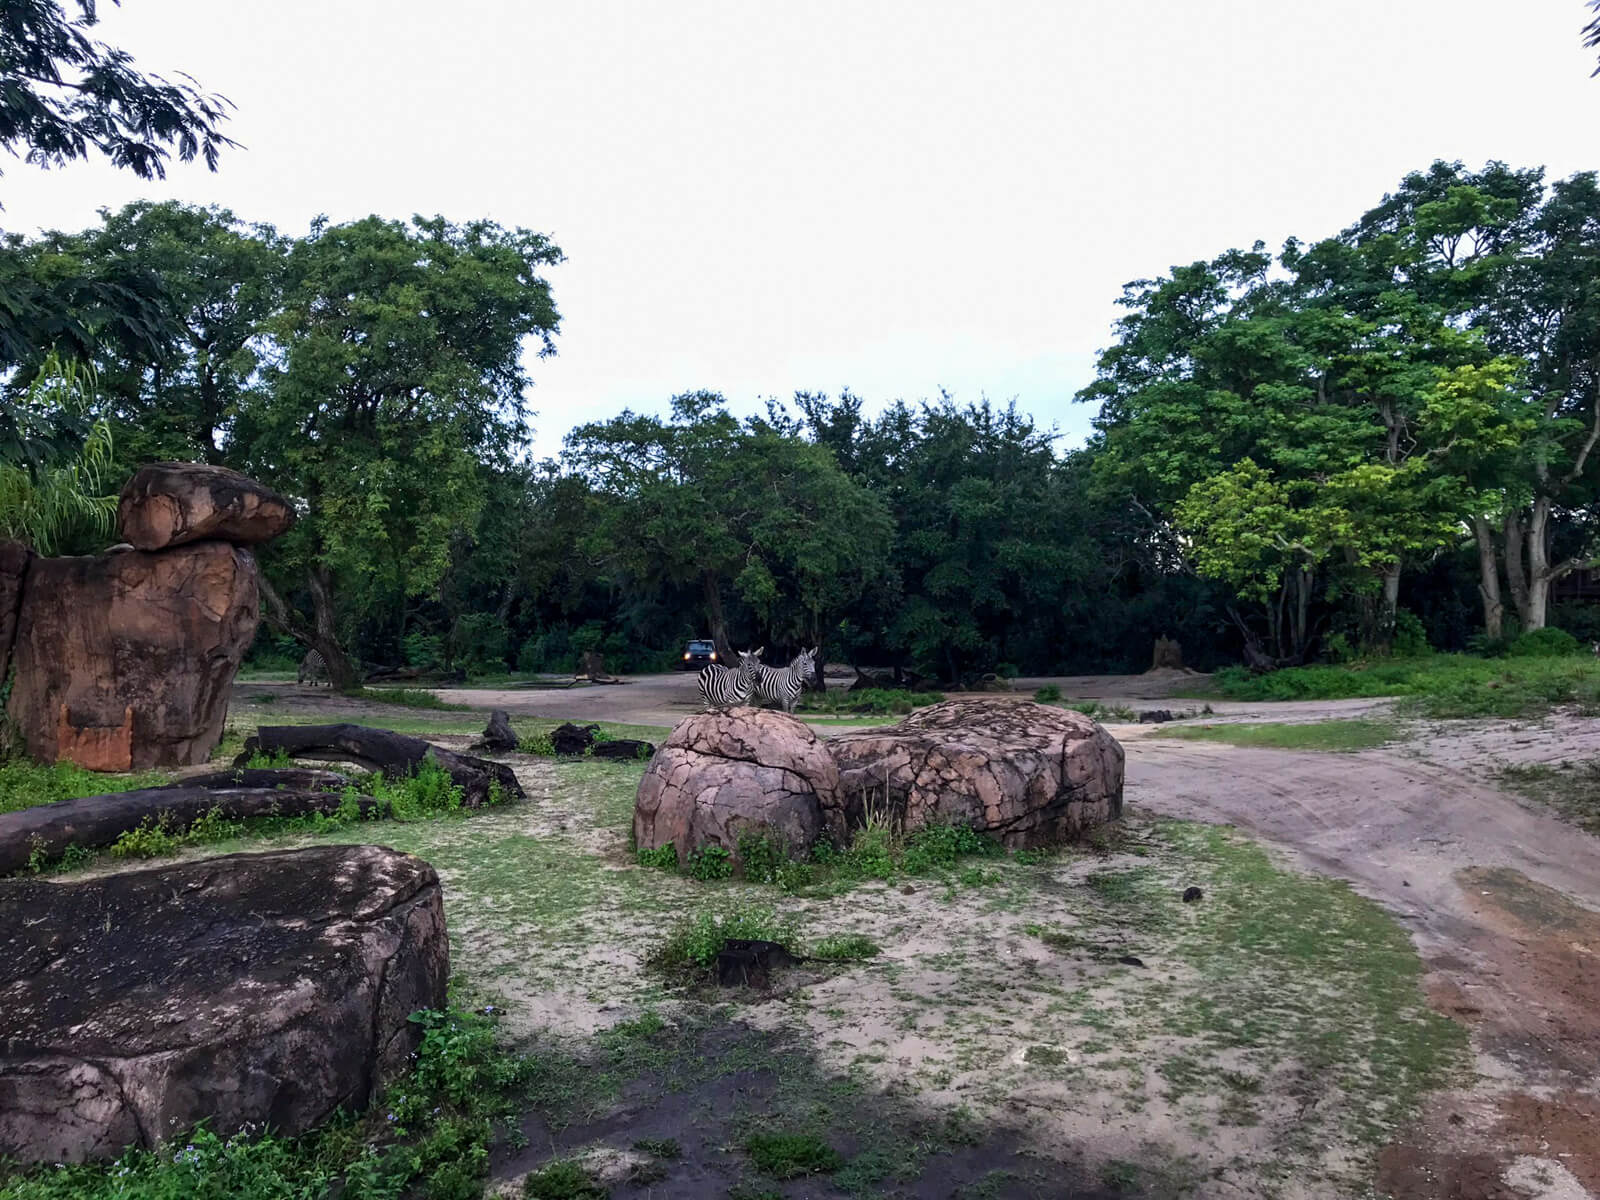 Barren terrain with some large rocks, trees in the background, and some zebras centre of frame but in the distance